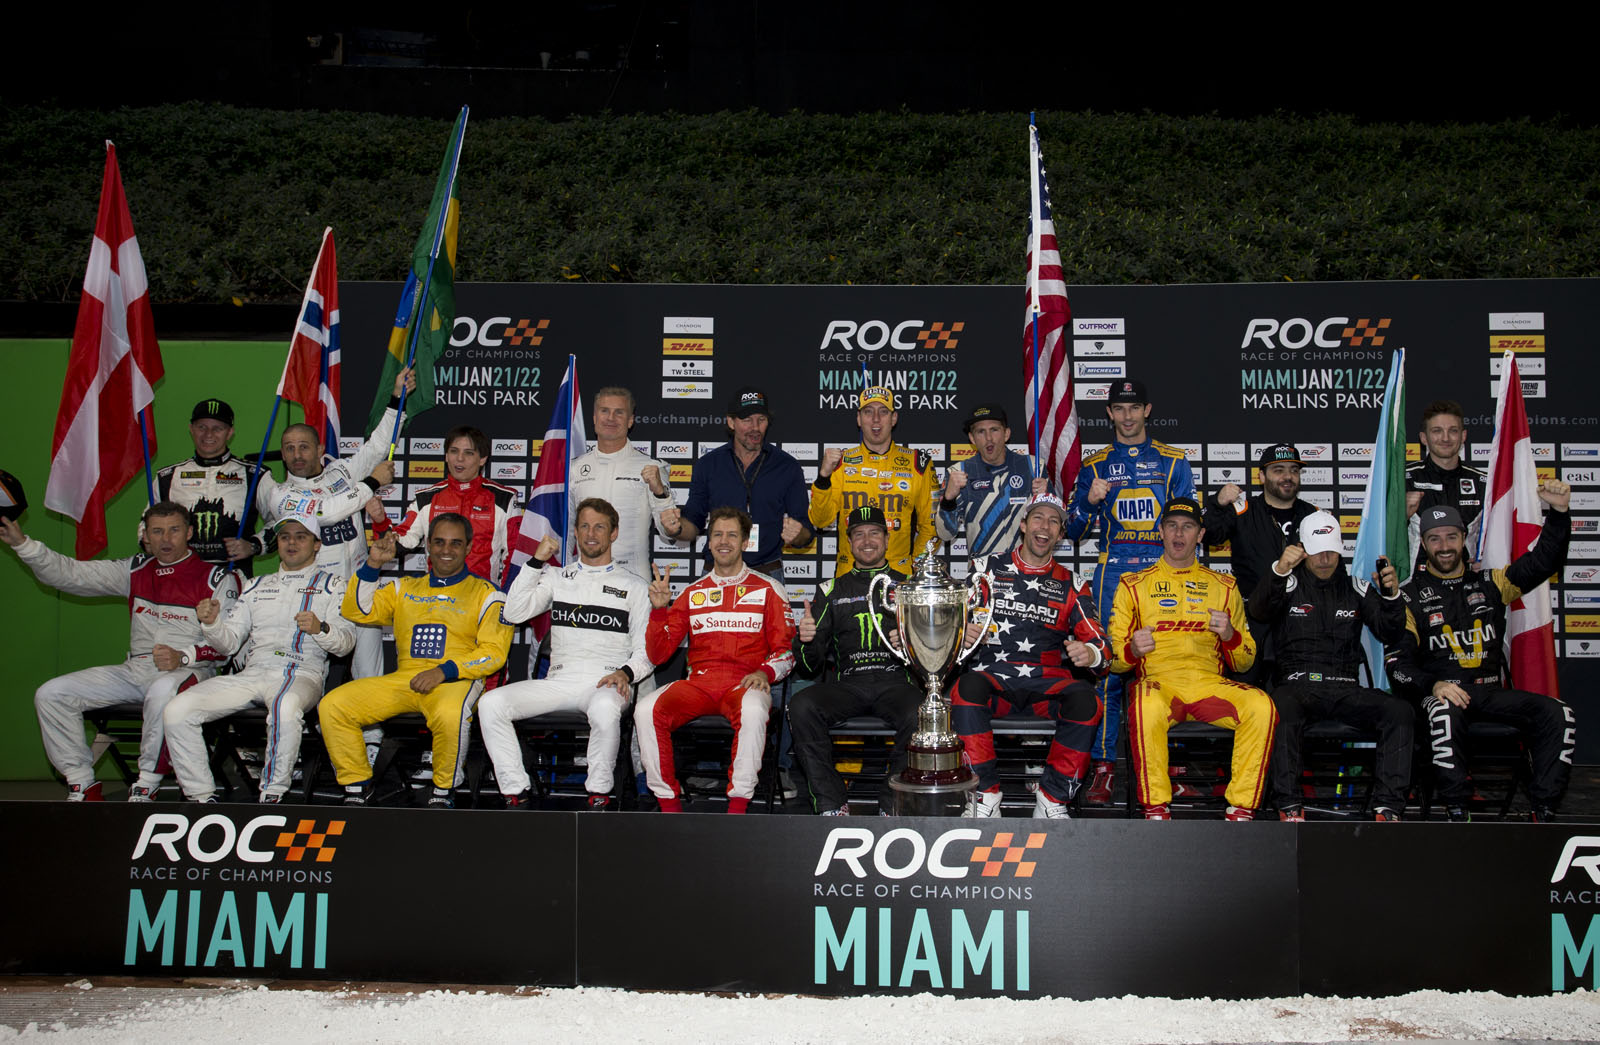 The drivers family photo during the ROC Nations Cup on Sunday 22 January 2017 at Marlins Park, Miami, Florida, USA